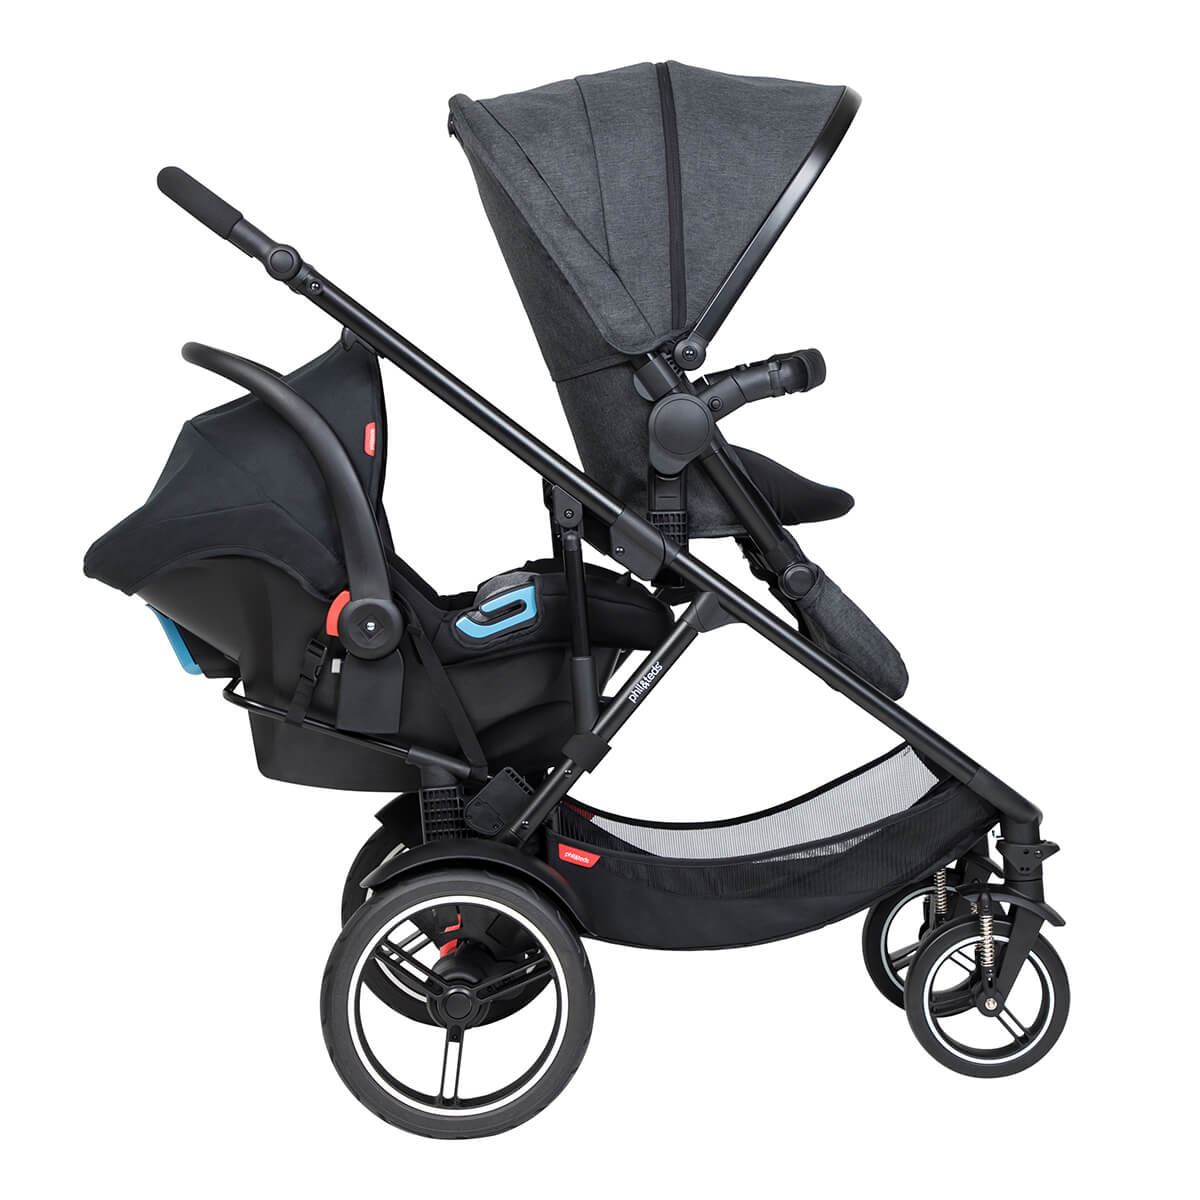 https://cdn.accentuate.io/4509910794317/19466204250306/philteds-voyager-buggy-in-forward-facing-mode-with-travel-system-in-the-rear-v1626485520472.jpg?1200x1200